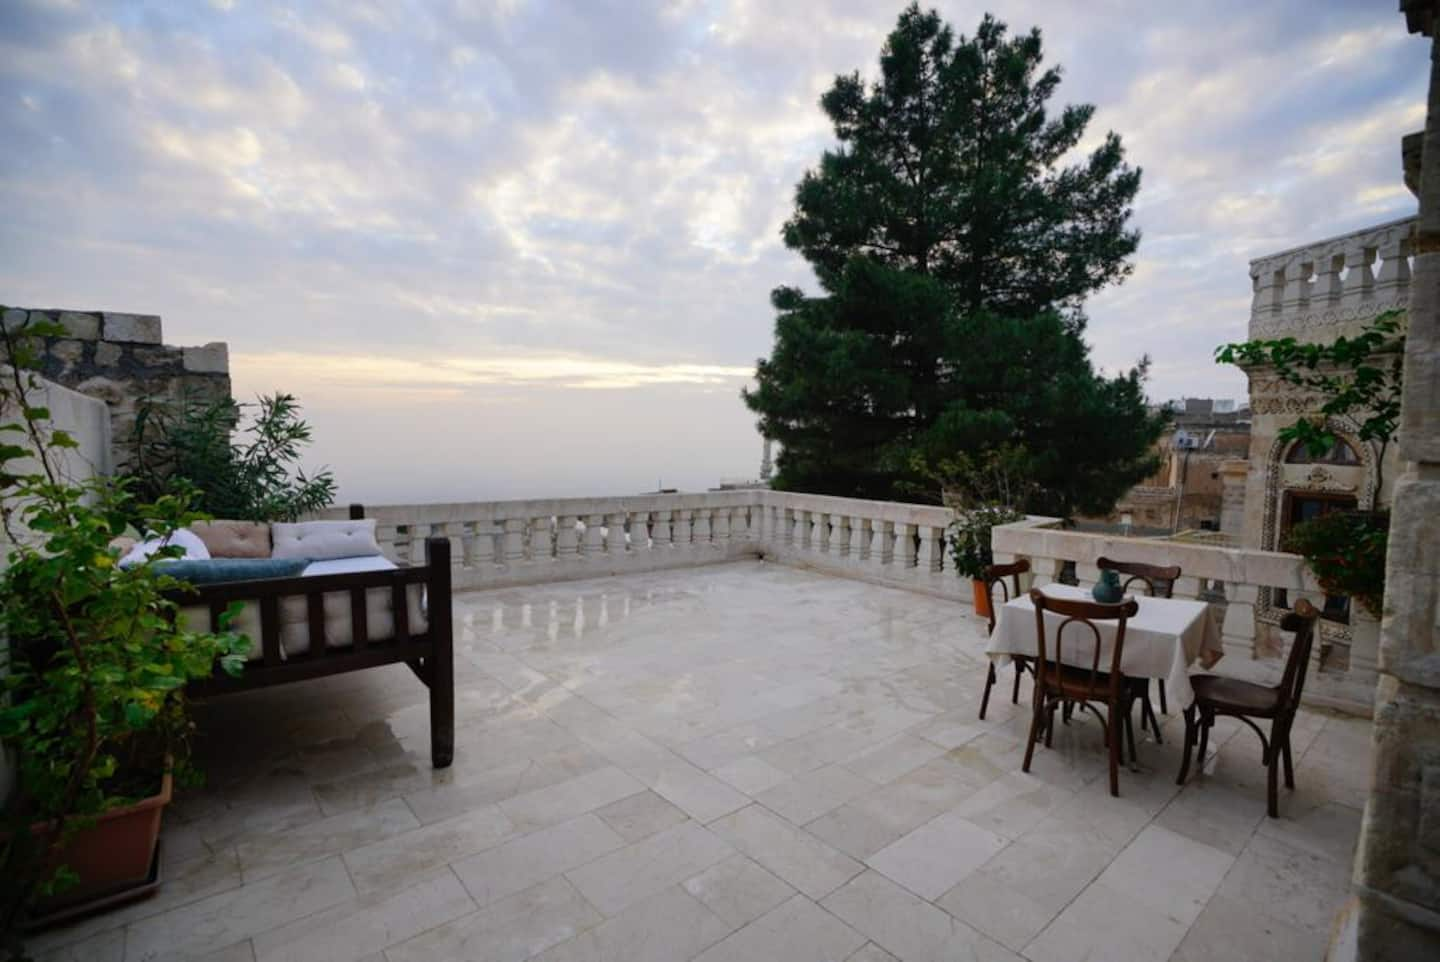 AirBnB in Turkey, Mardin: Old mansion, and Mesopotamia views!